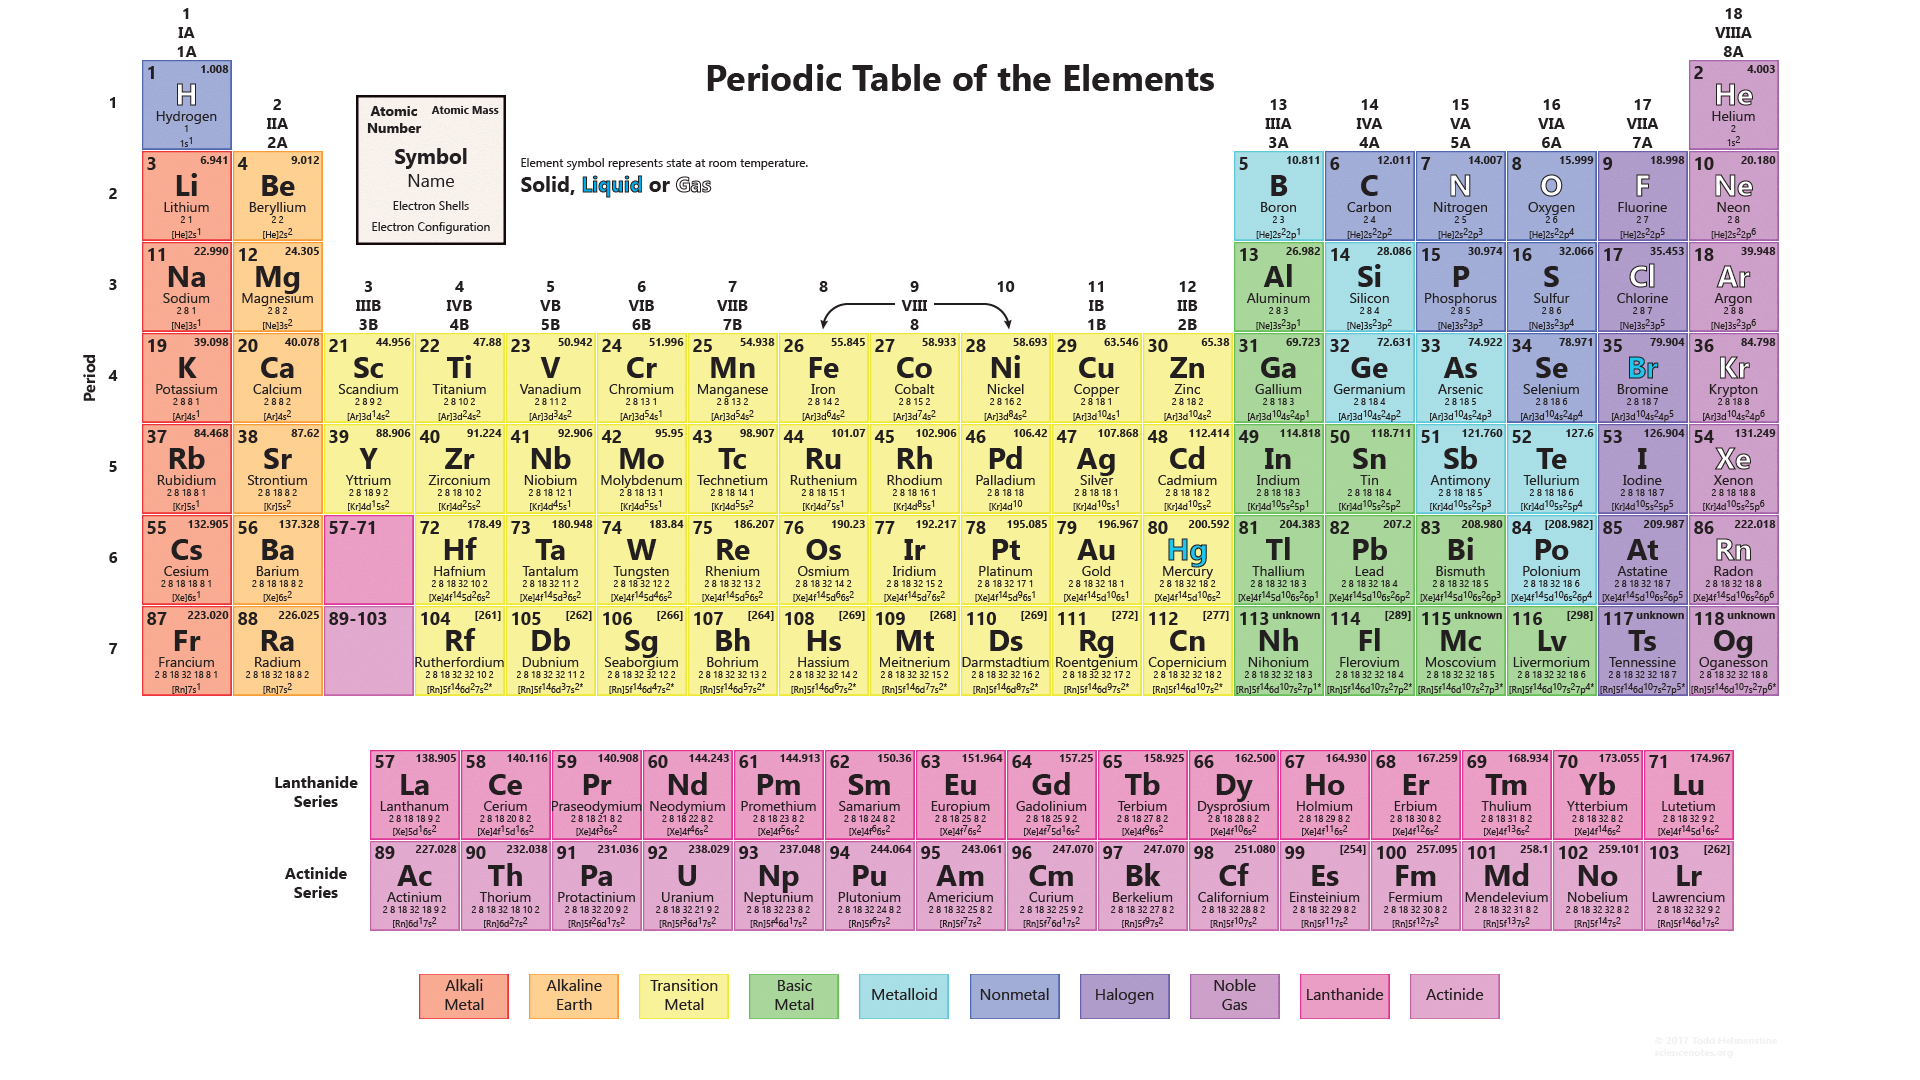 Periodic Table Works With 118 Elements